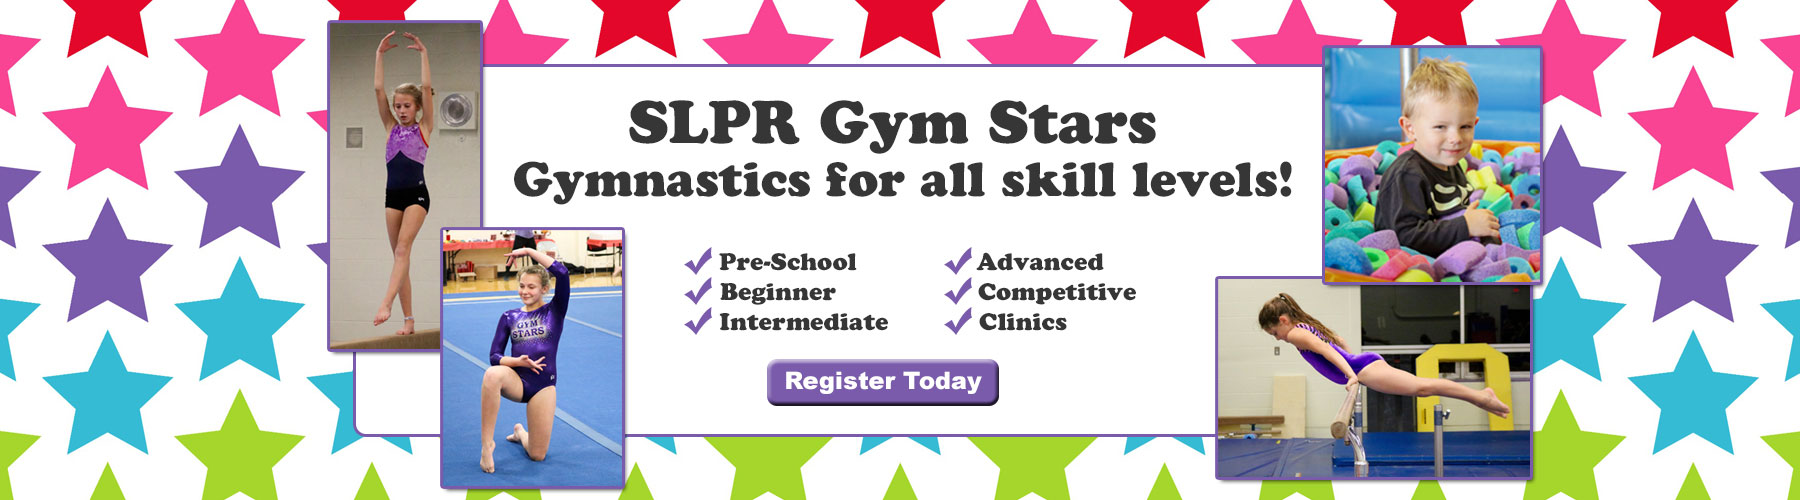 Gym Stars Gymnastics at SLPR